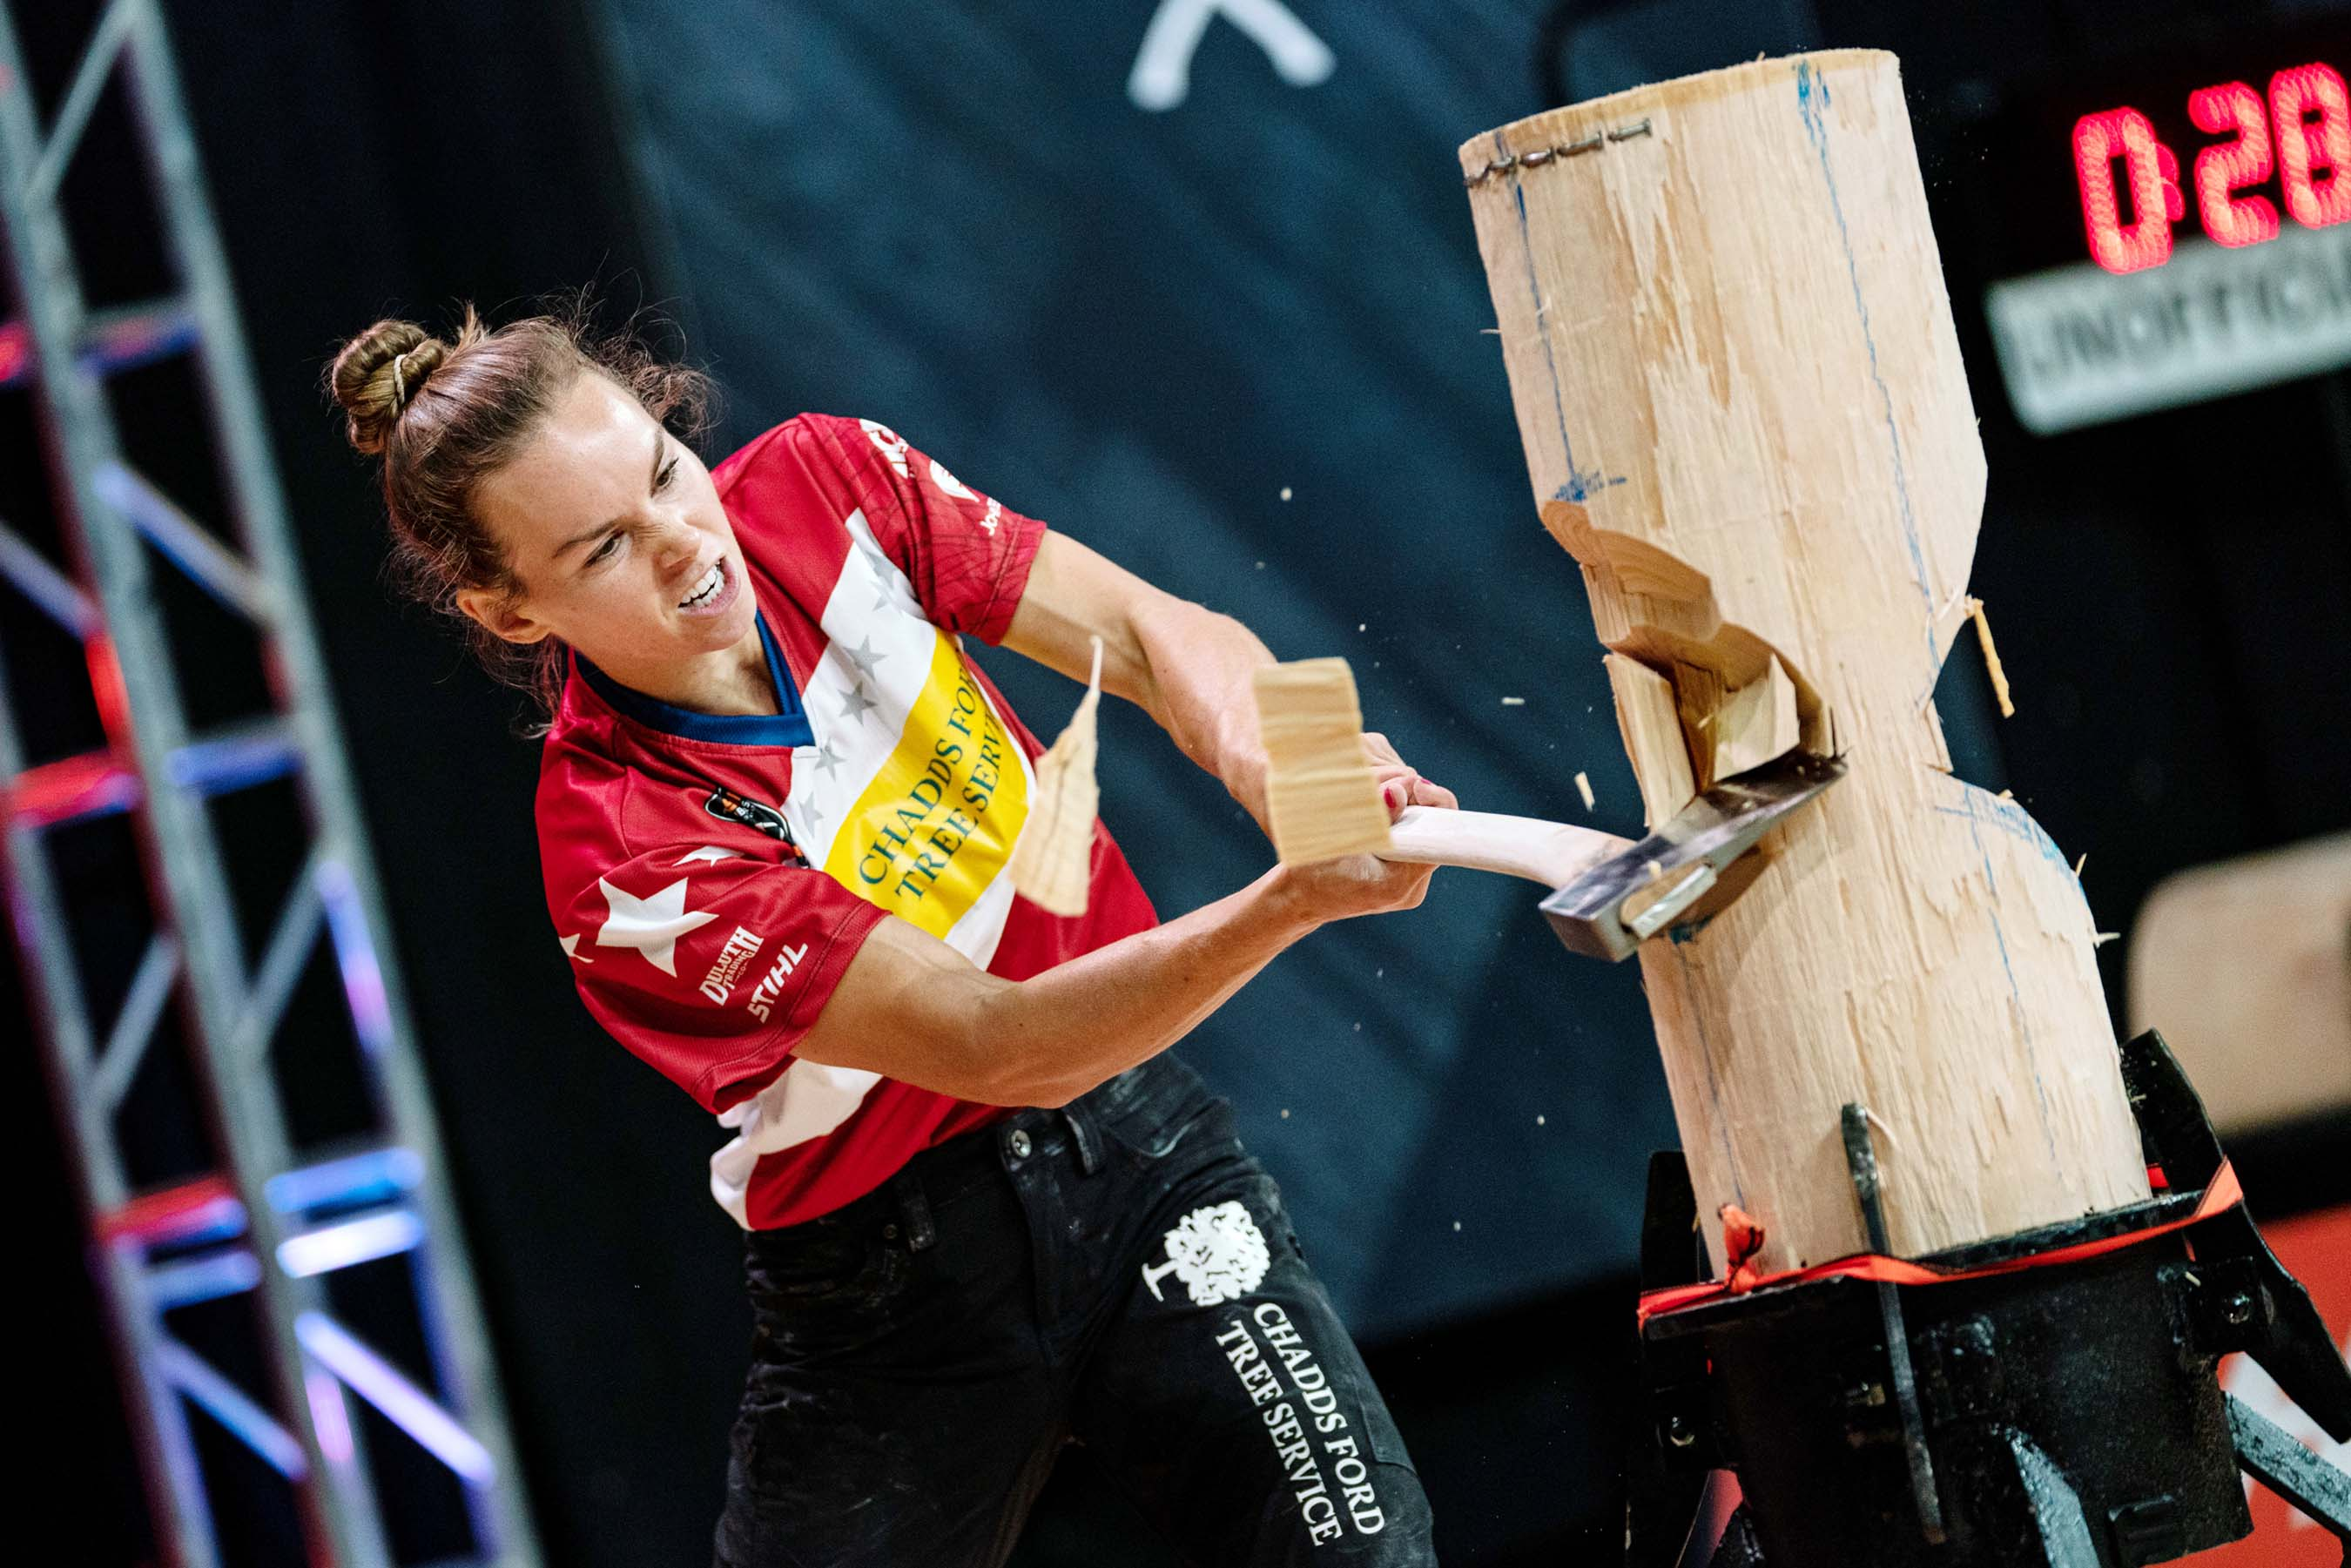 Martha King, 2019 U.S. STIHL TIMBERSPORTS Women's Division Champion, competes in the Standing Block, a fourth discipline added to the Women's Division this season.